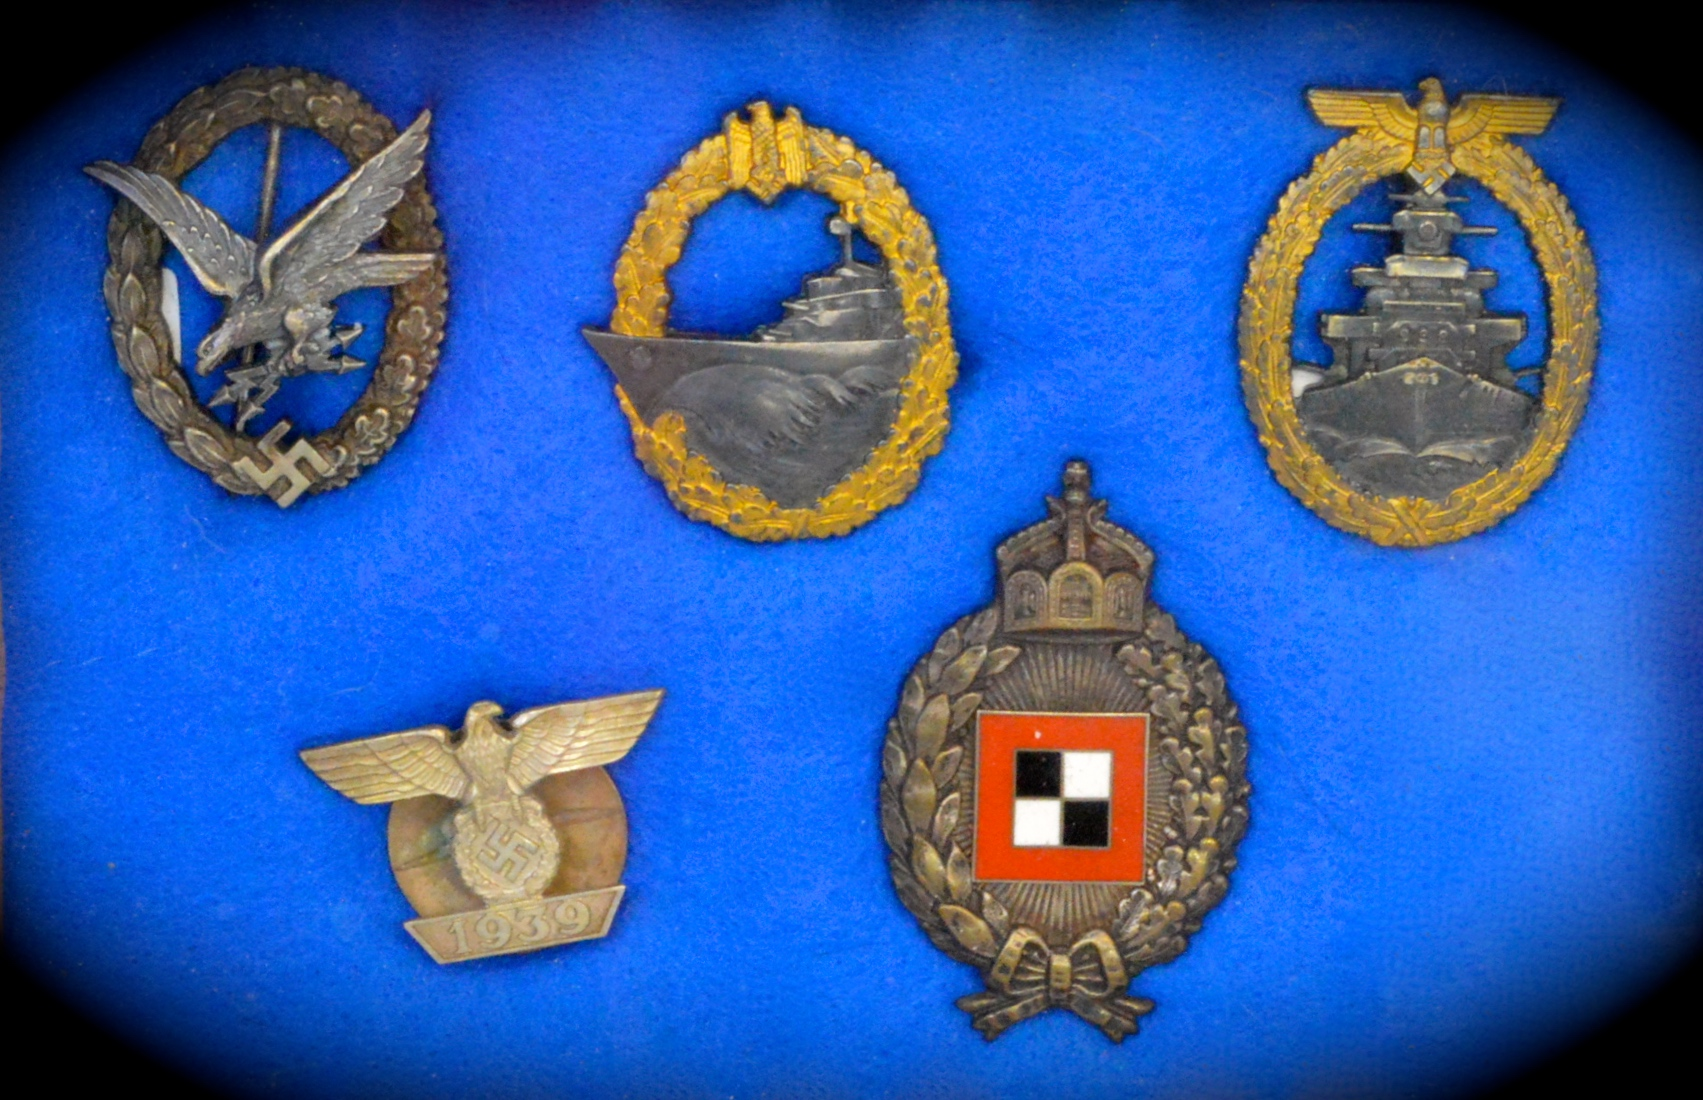 Incredible Vintage Militaria WWII WWI Civil War Etc